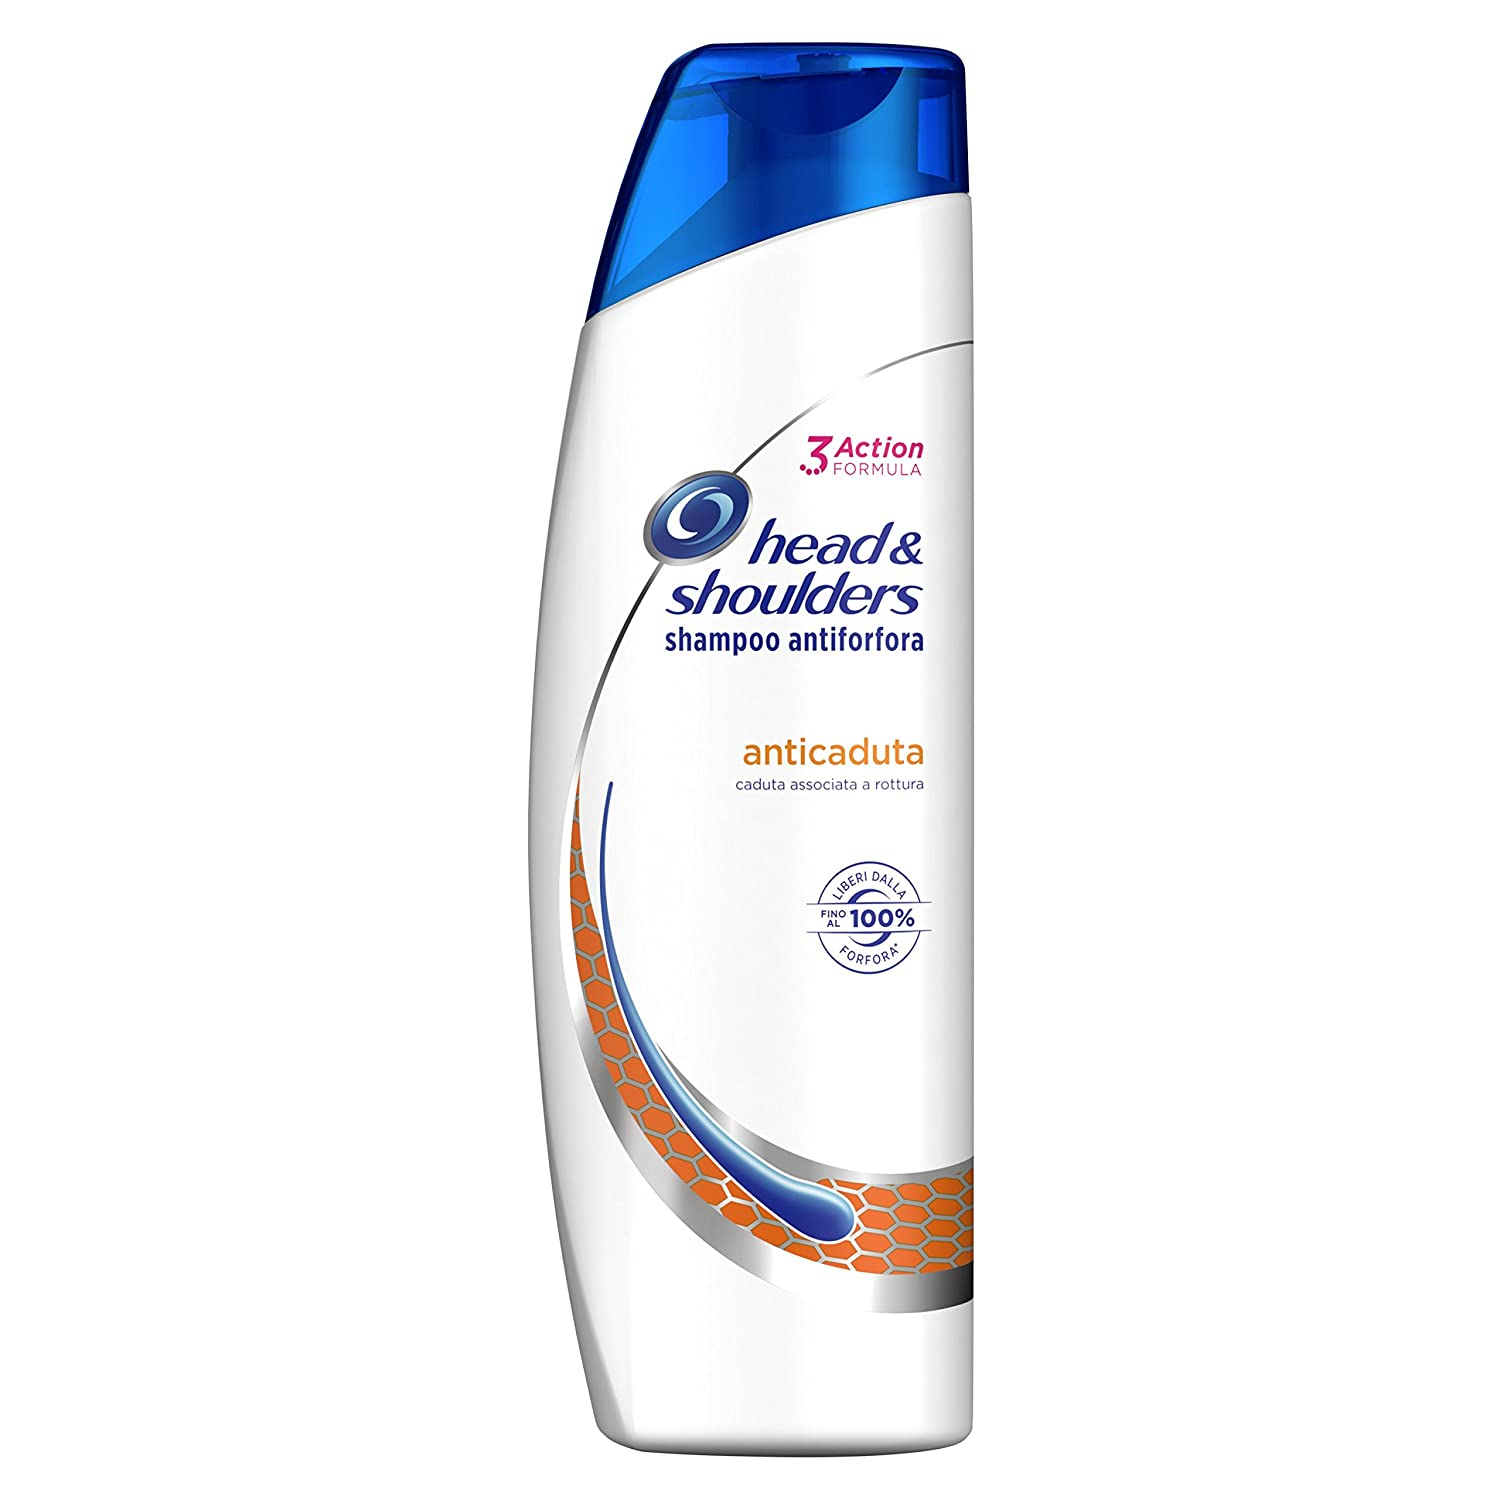 Head & shoulders - Sha.anticaduta antiforfora 250 ml ...